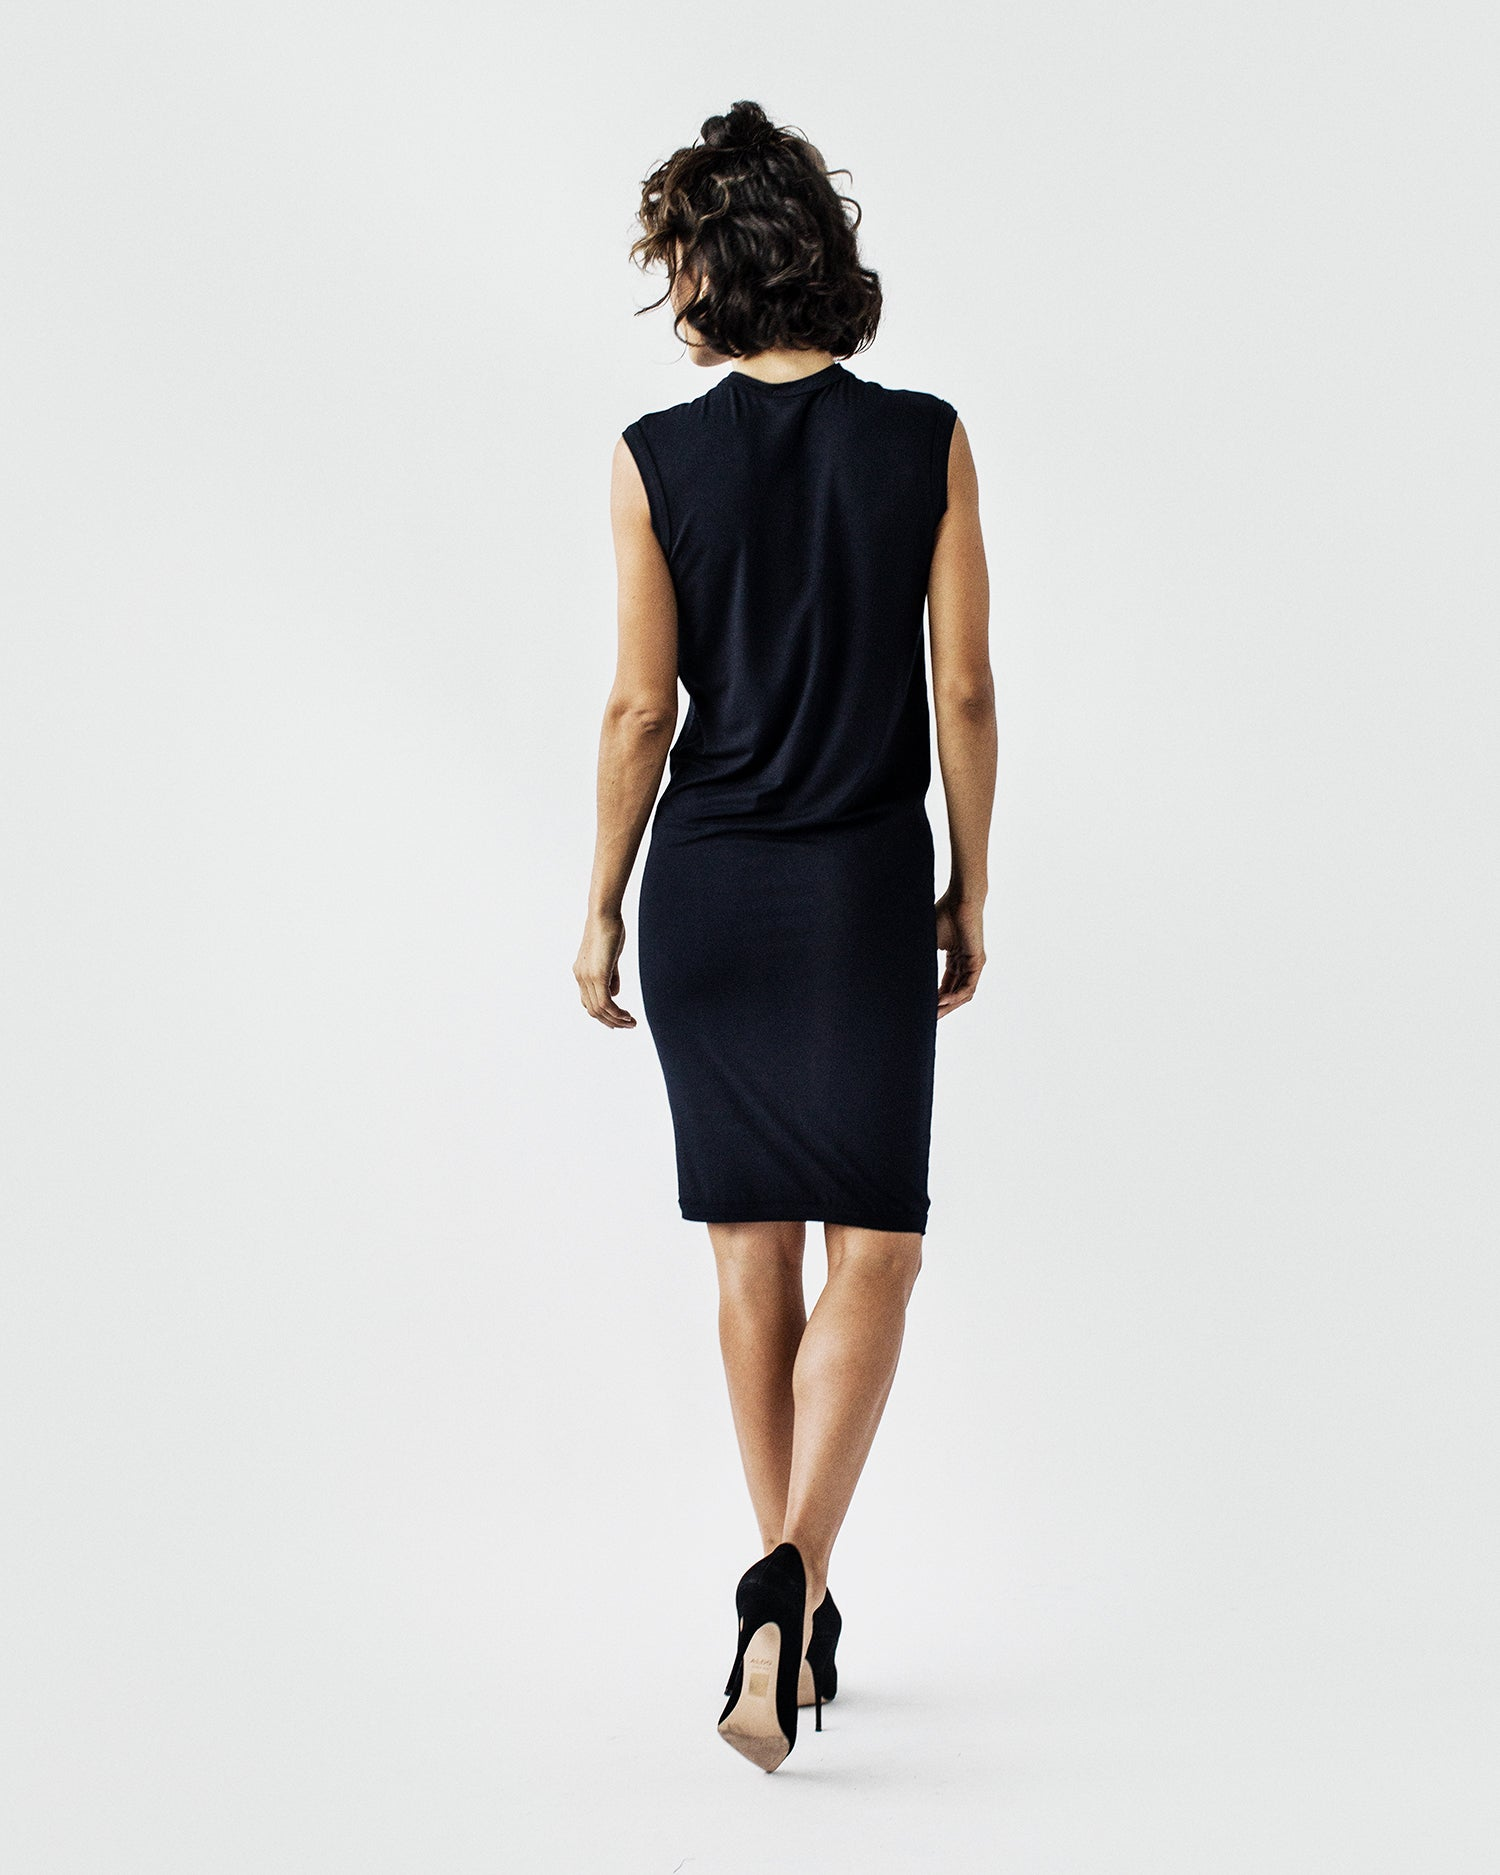 SHANNON Crew Neck-  Sleeveless, Semi-Fitted, Viscose Jersey Dress